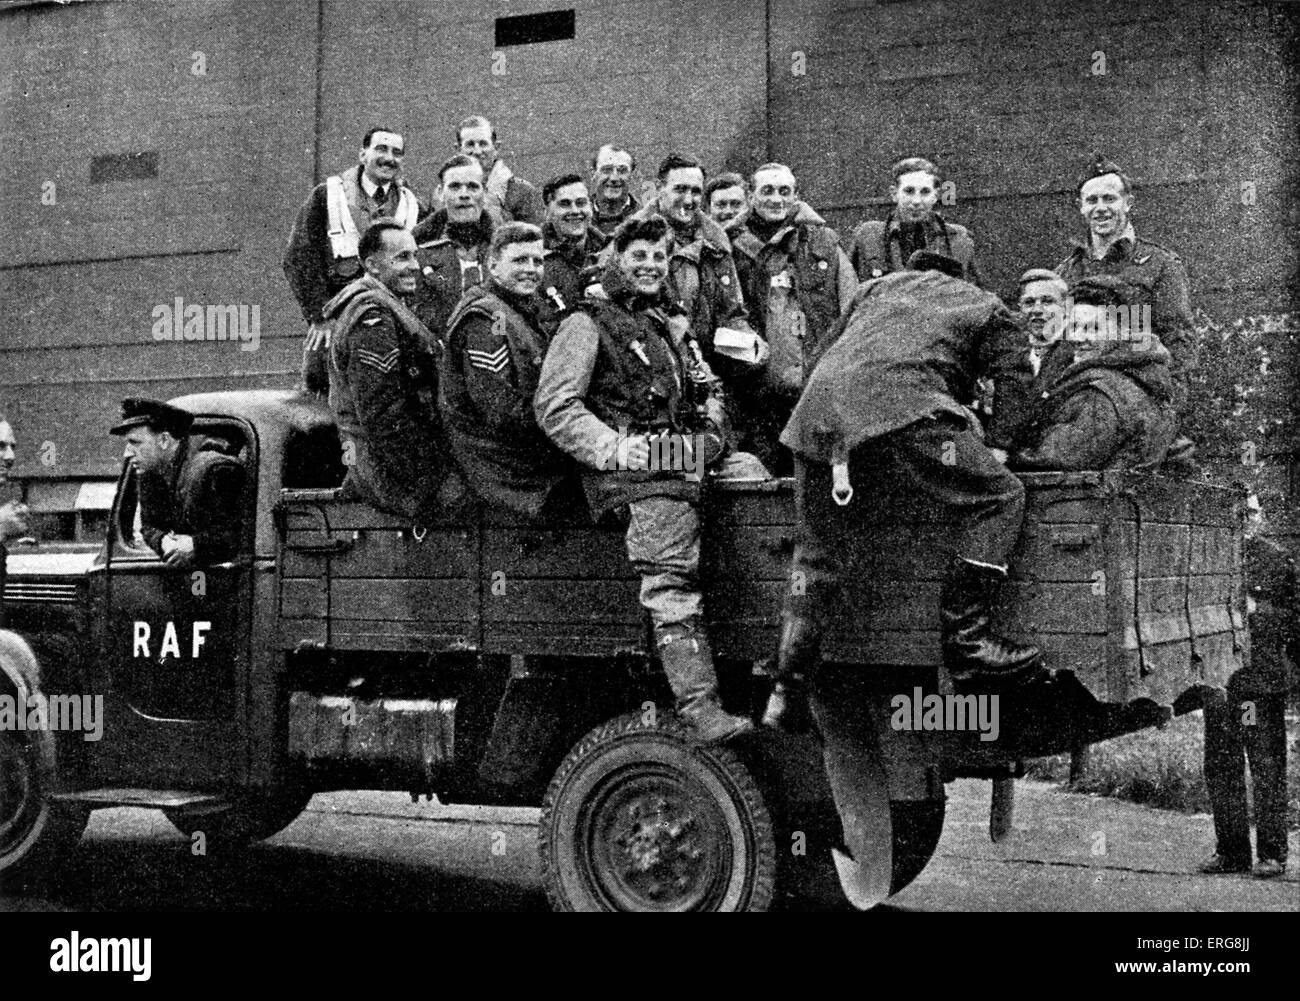 World War 2 - Bomber command,  Published 1941. Bomber command crews. From Government publication: caption reads: - Stock Image